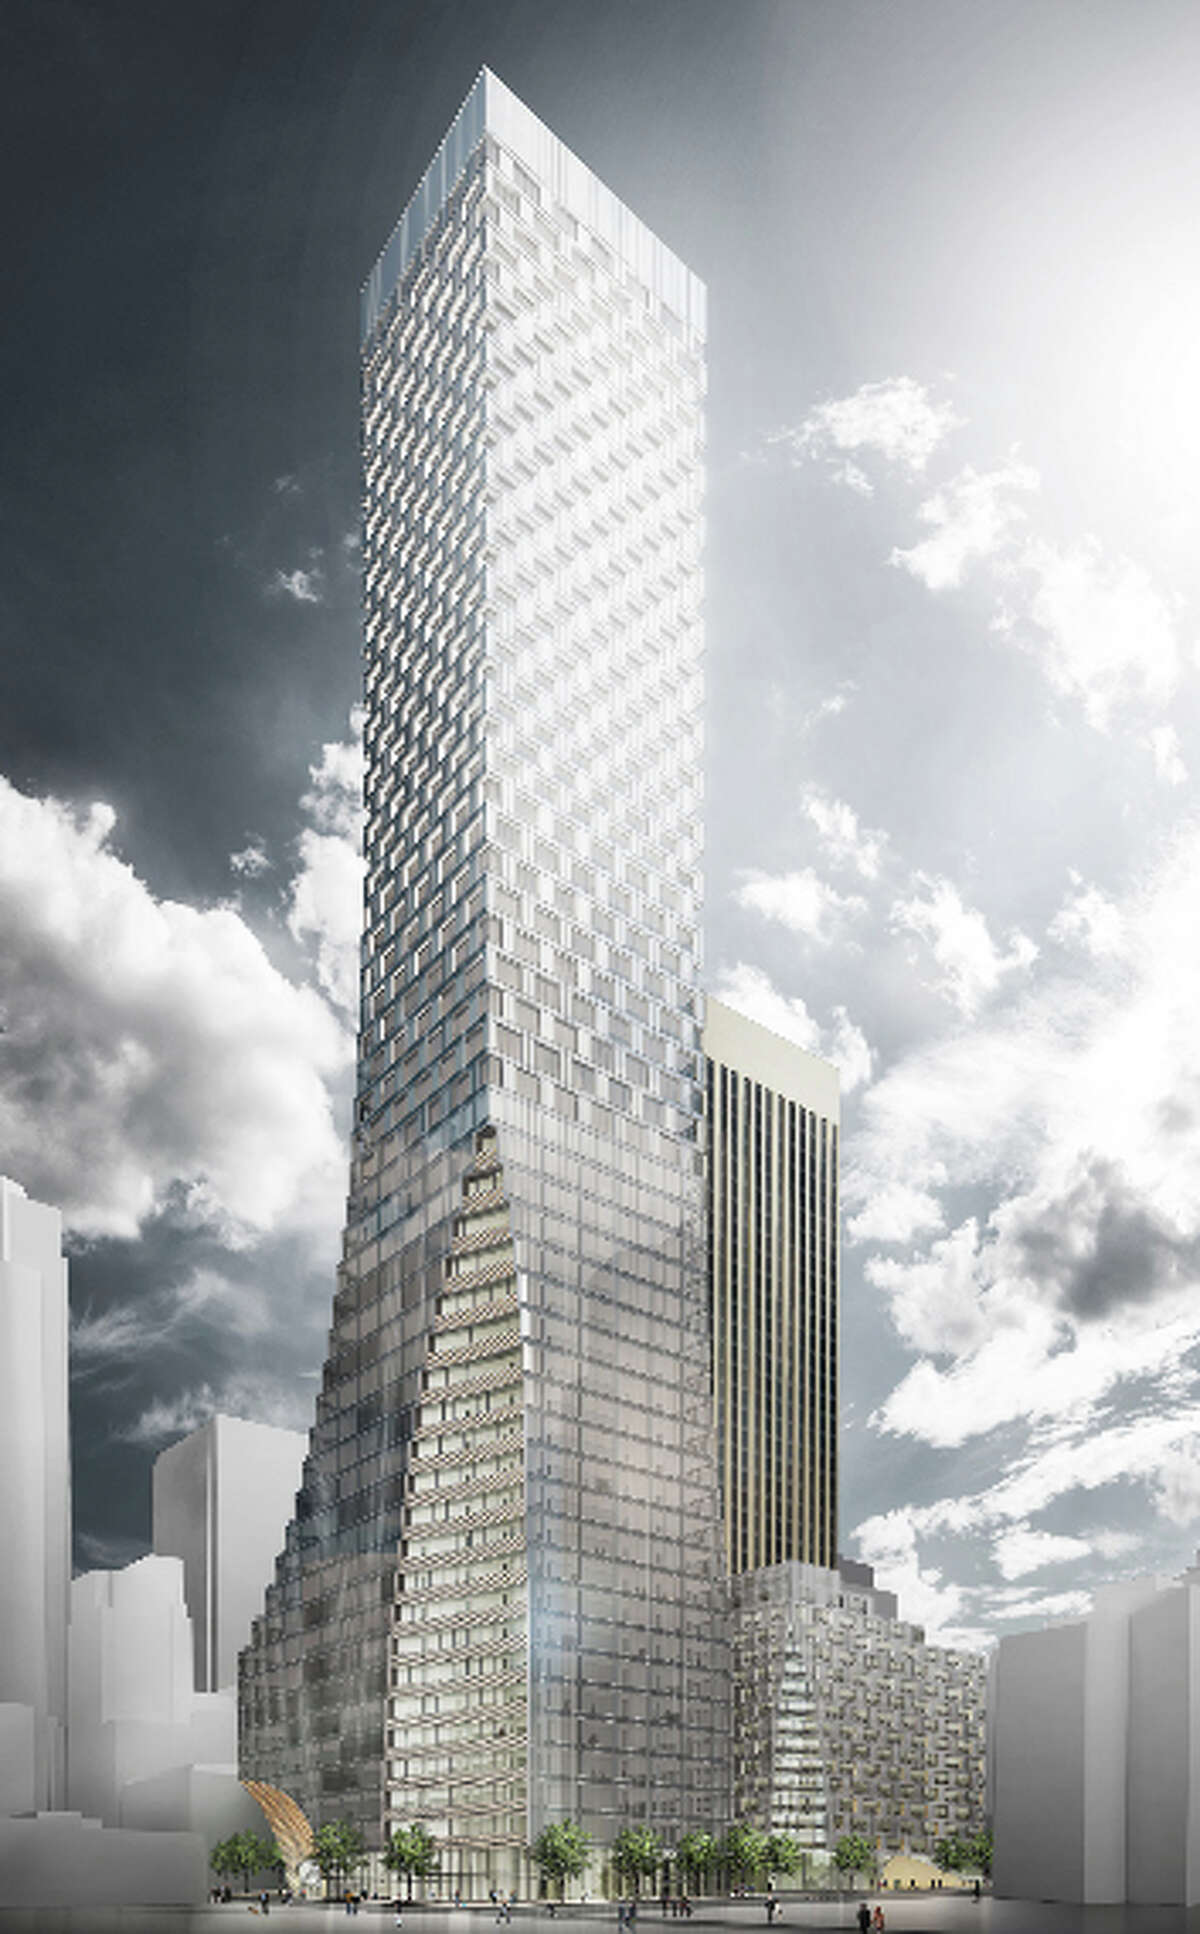 The concept design for redevelopment of the Rainier Square site, beside the existing Rainier Tower, is shown at the corner of Fourth Avenue and Union Street in this artist's depiction.